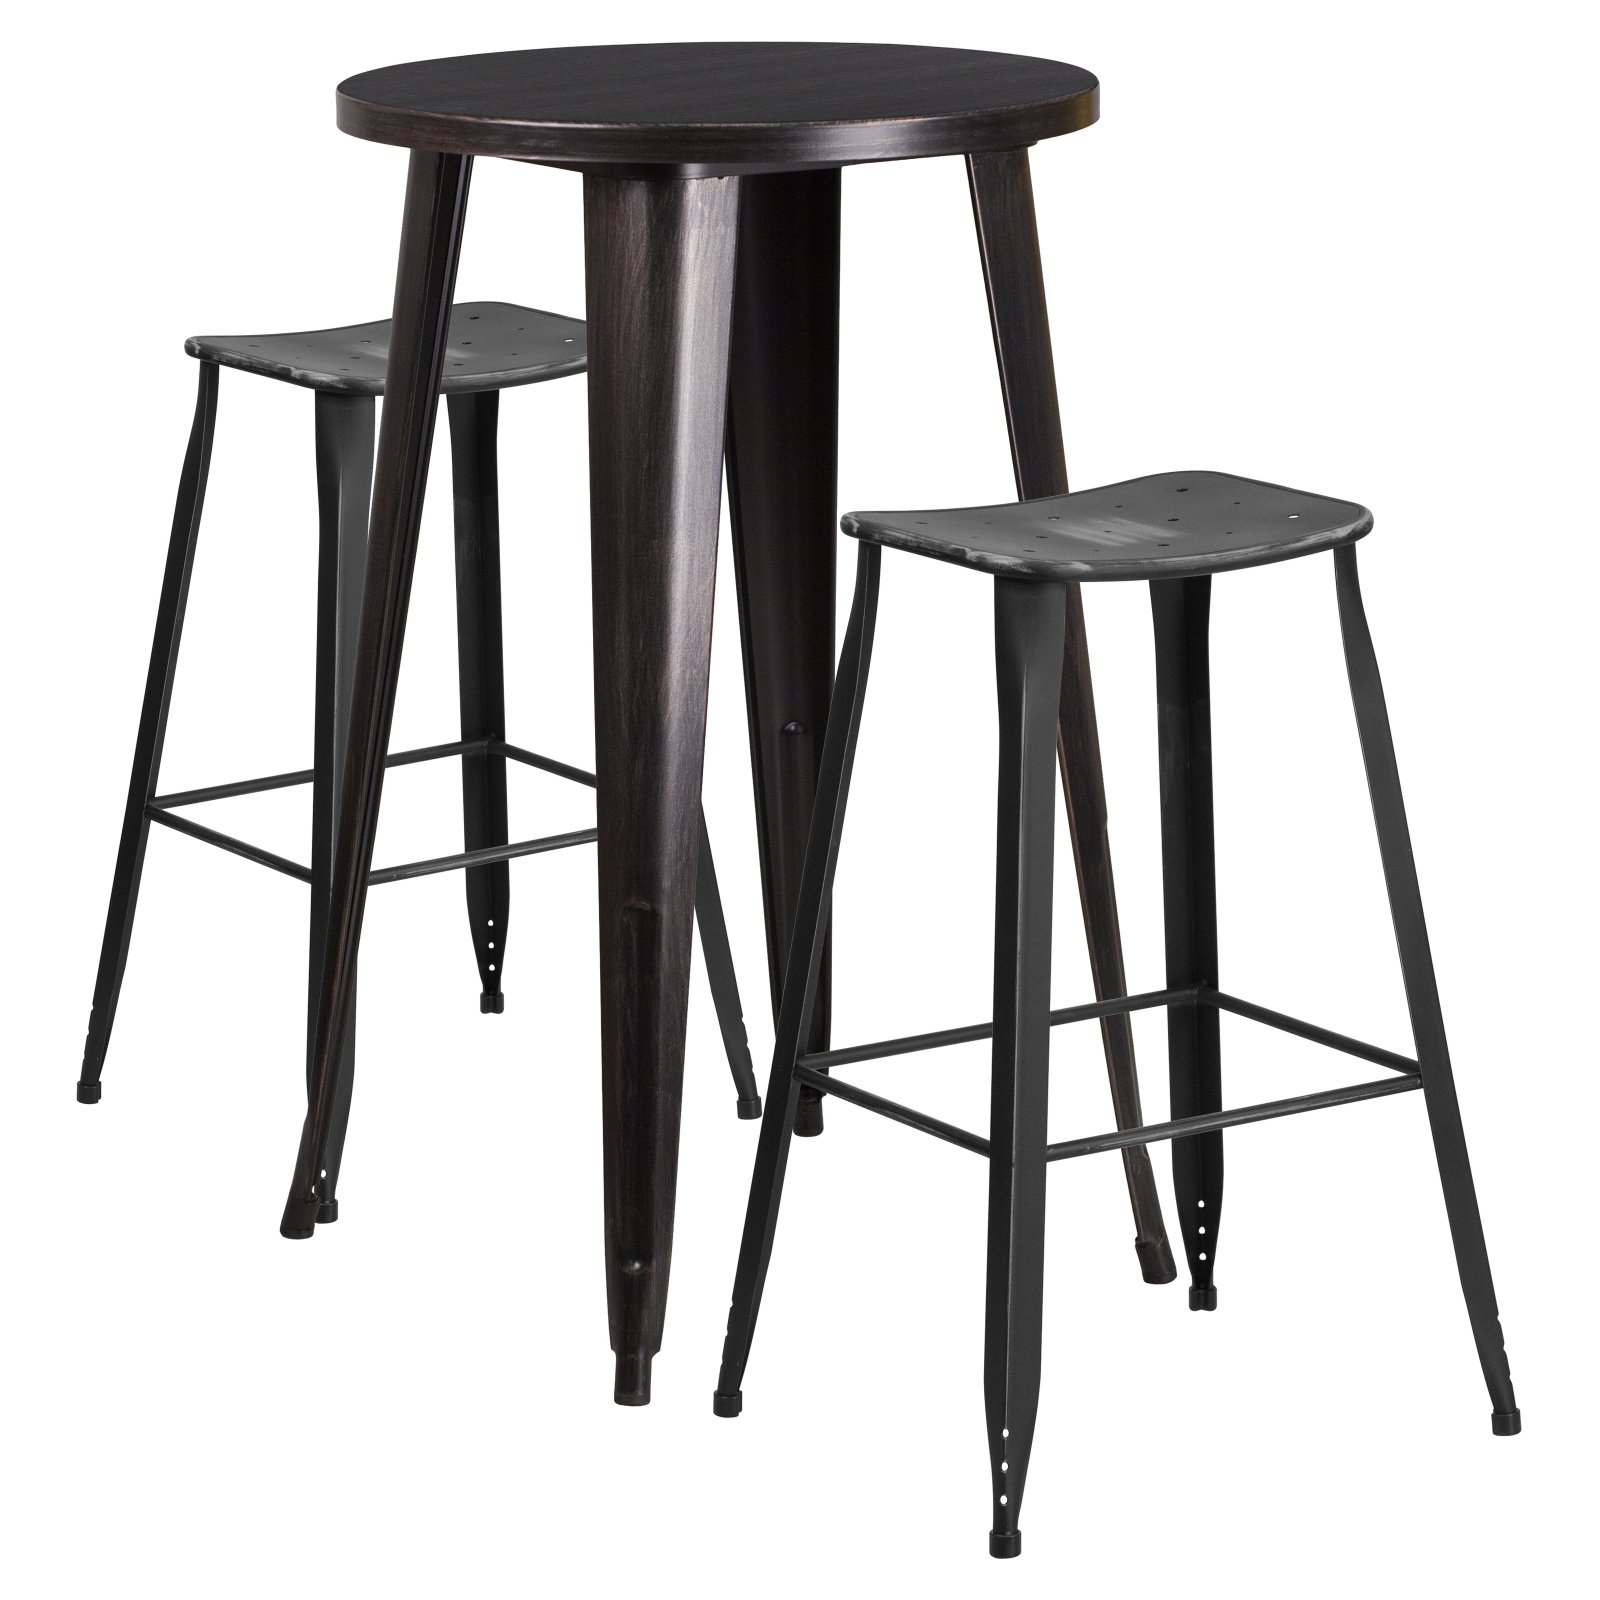 Flash Furniture 24'' Round Black-Antique Gold Metal Indoor-Outdoor Bar Table Set with 2 Distressed Backless Saddle Seat Barstools